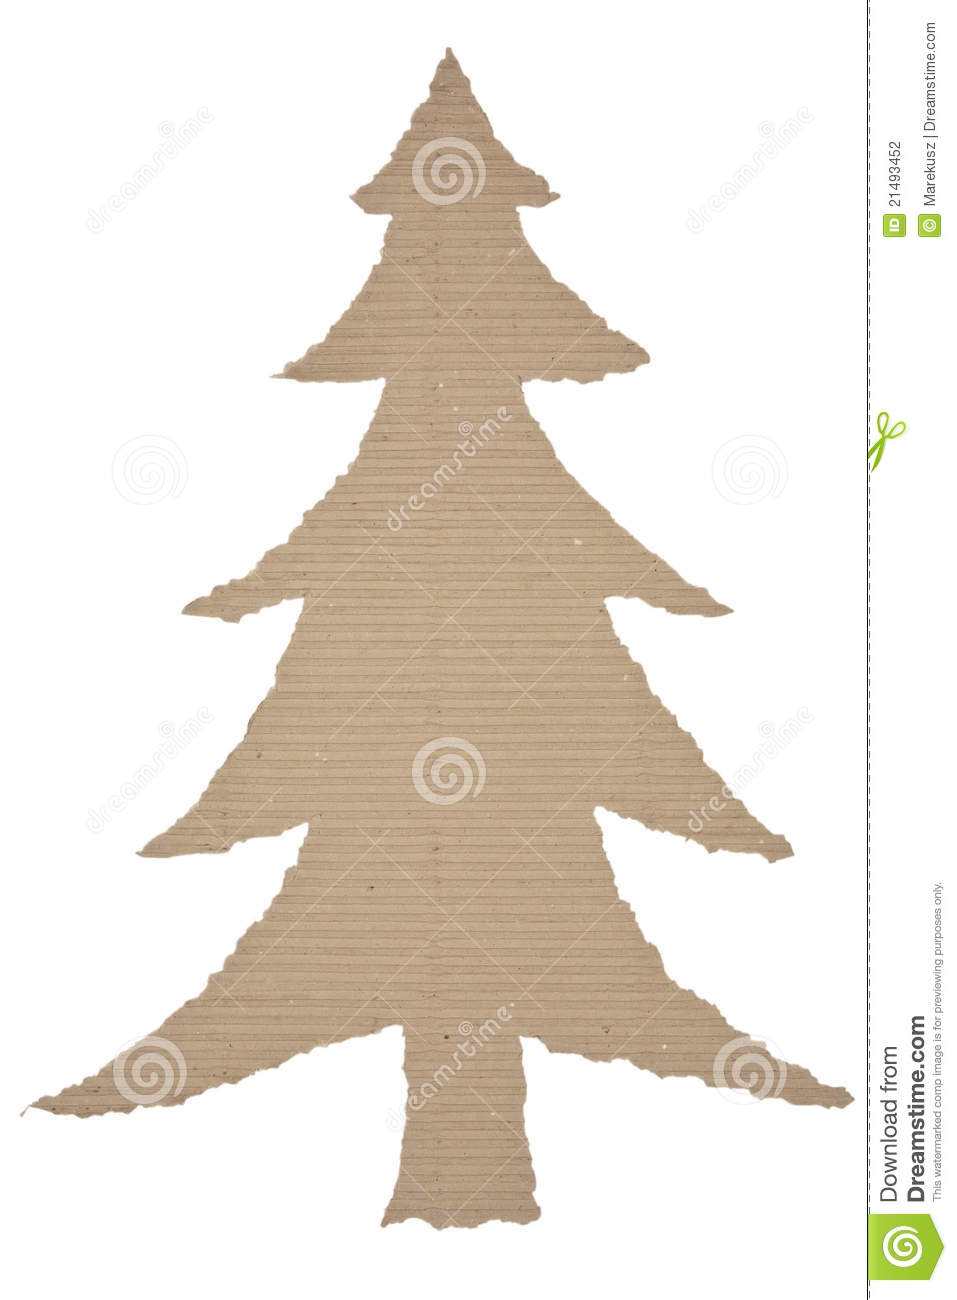 Corrugated paper Christmas tree 26